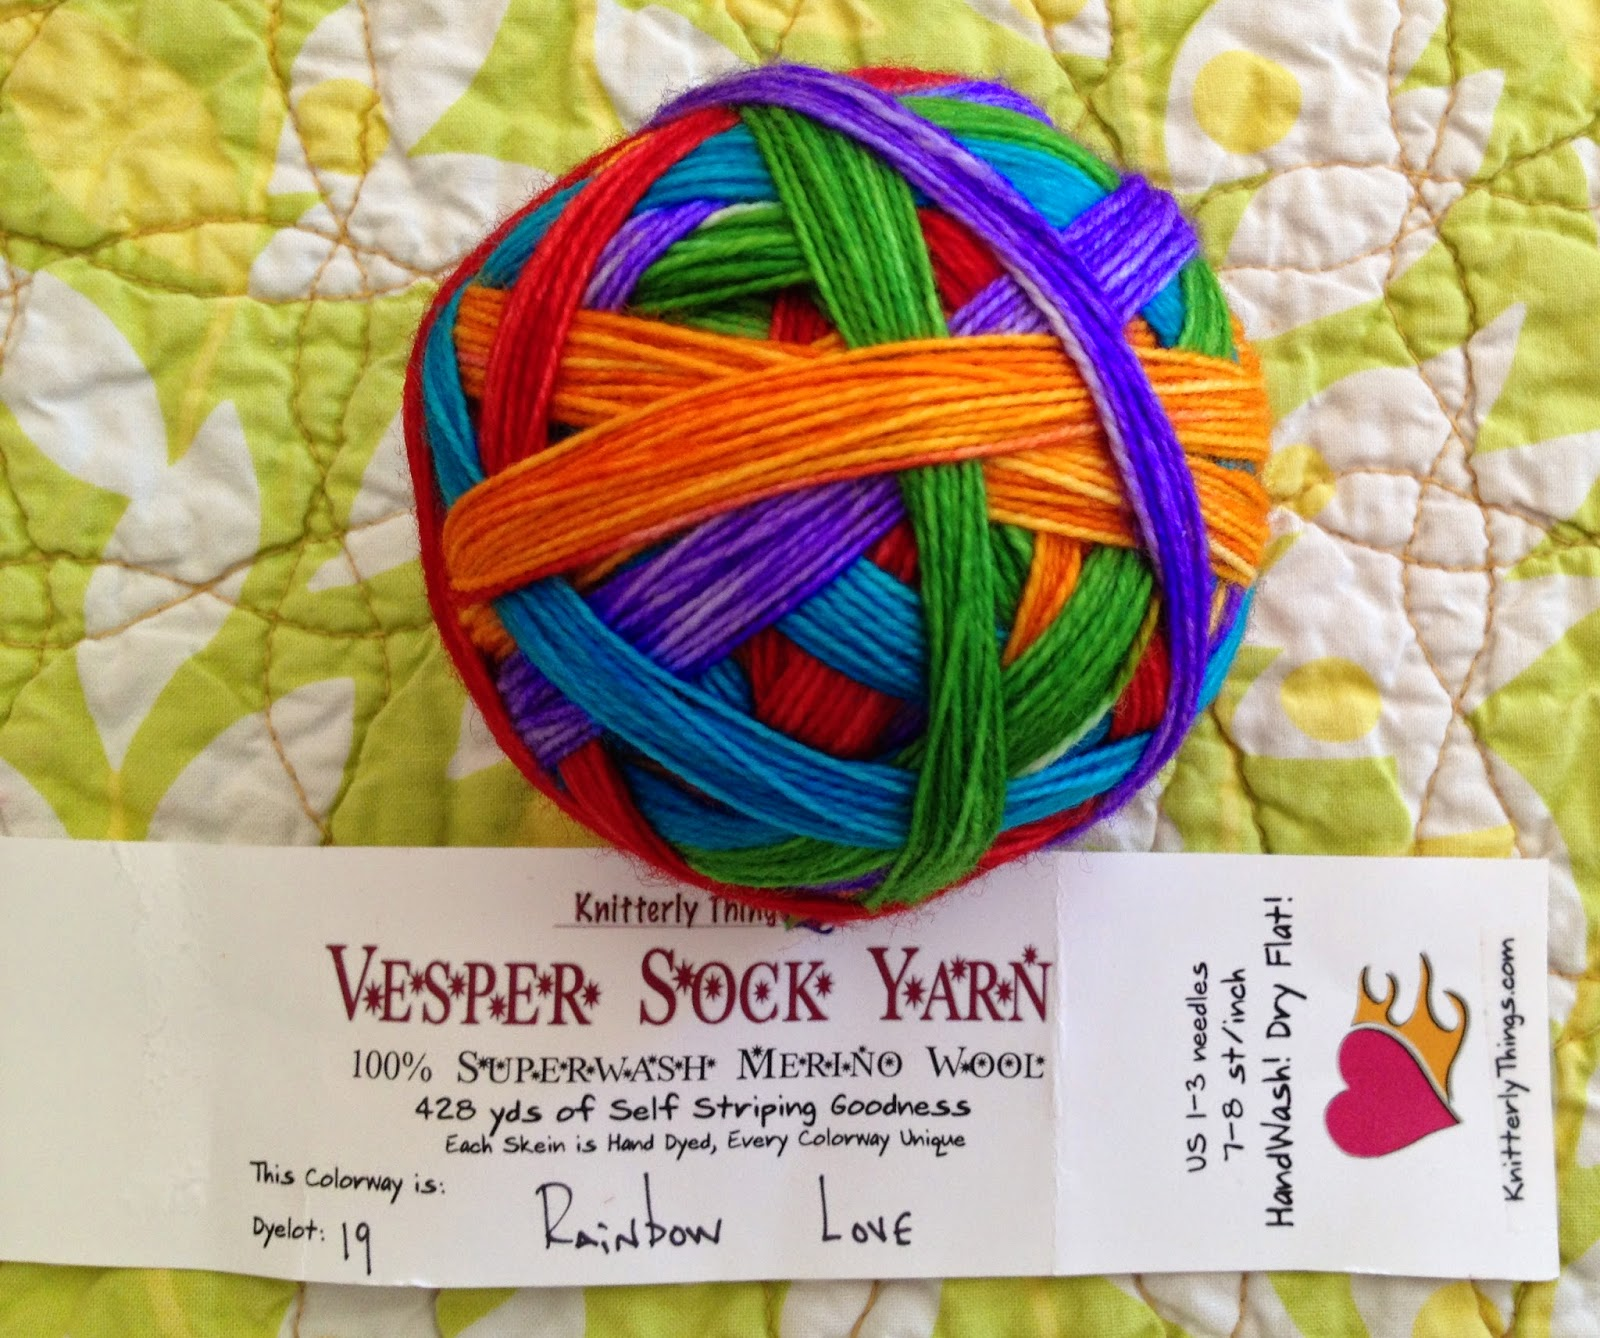 Is a yarn ball and a yarn skein the same thing?